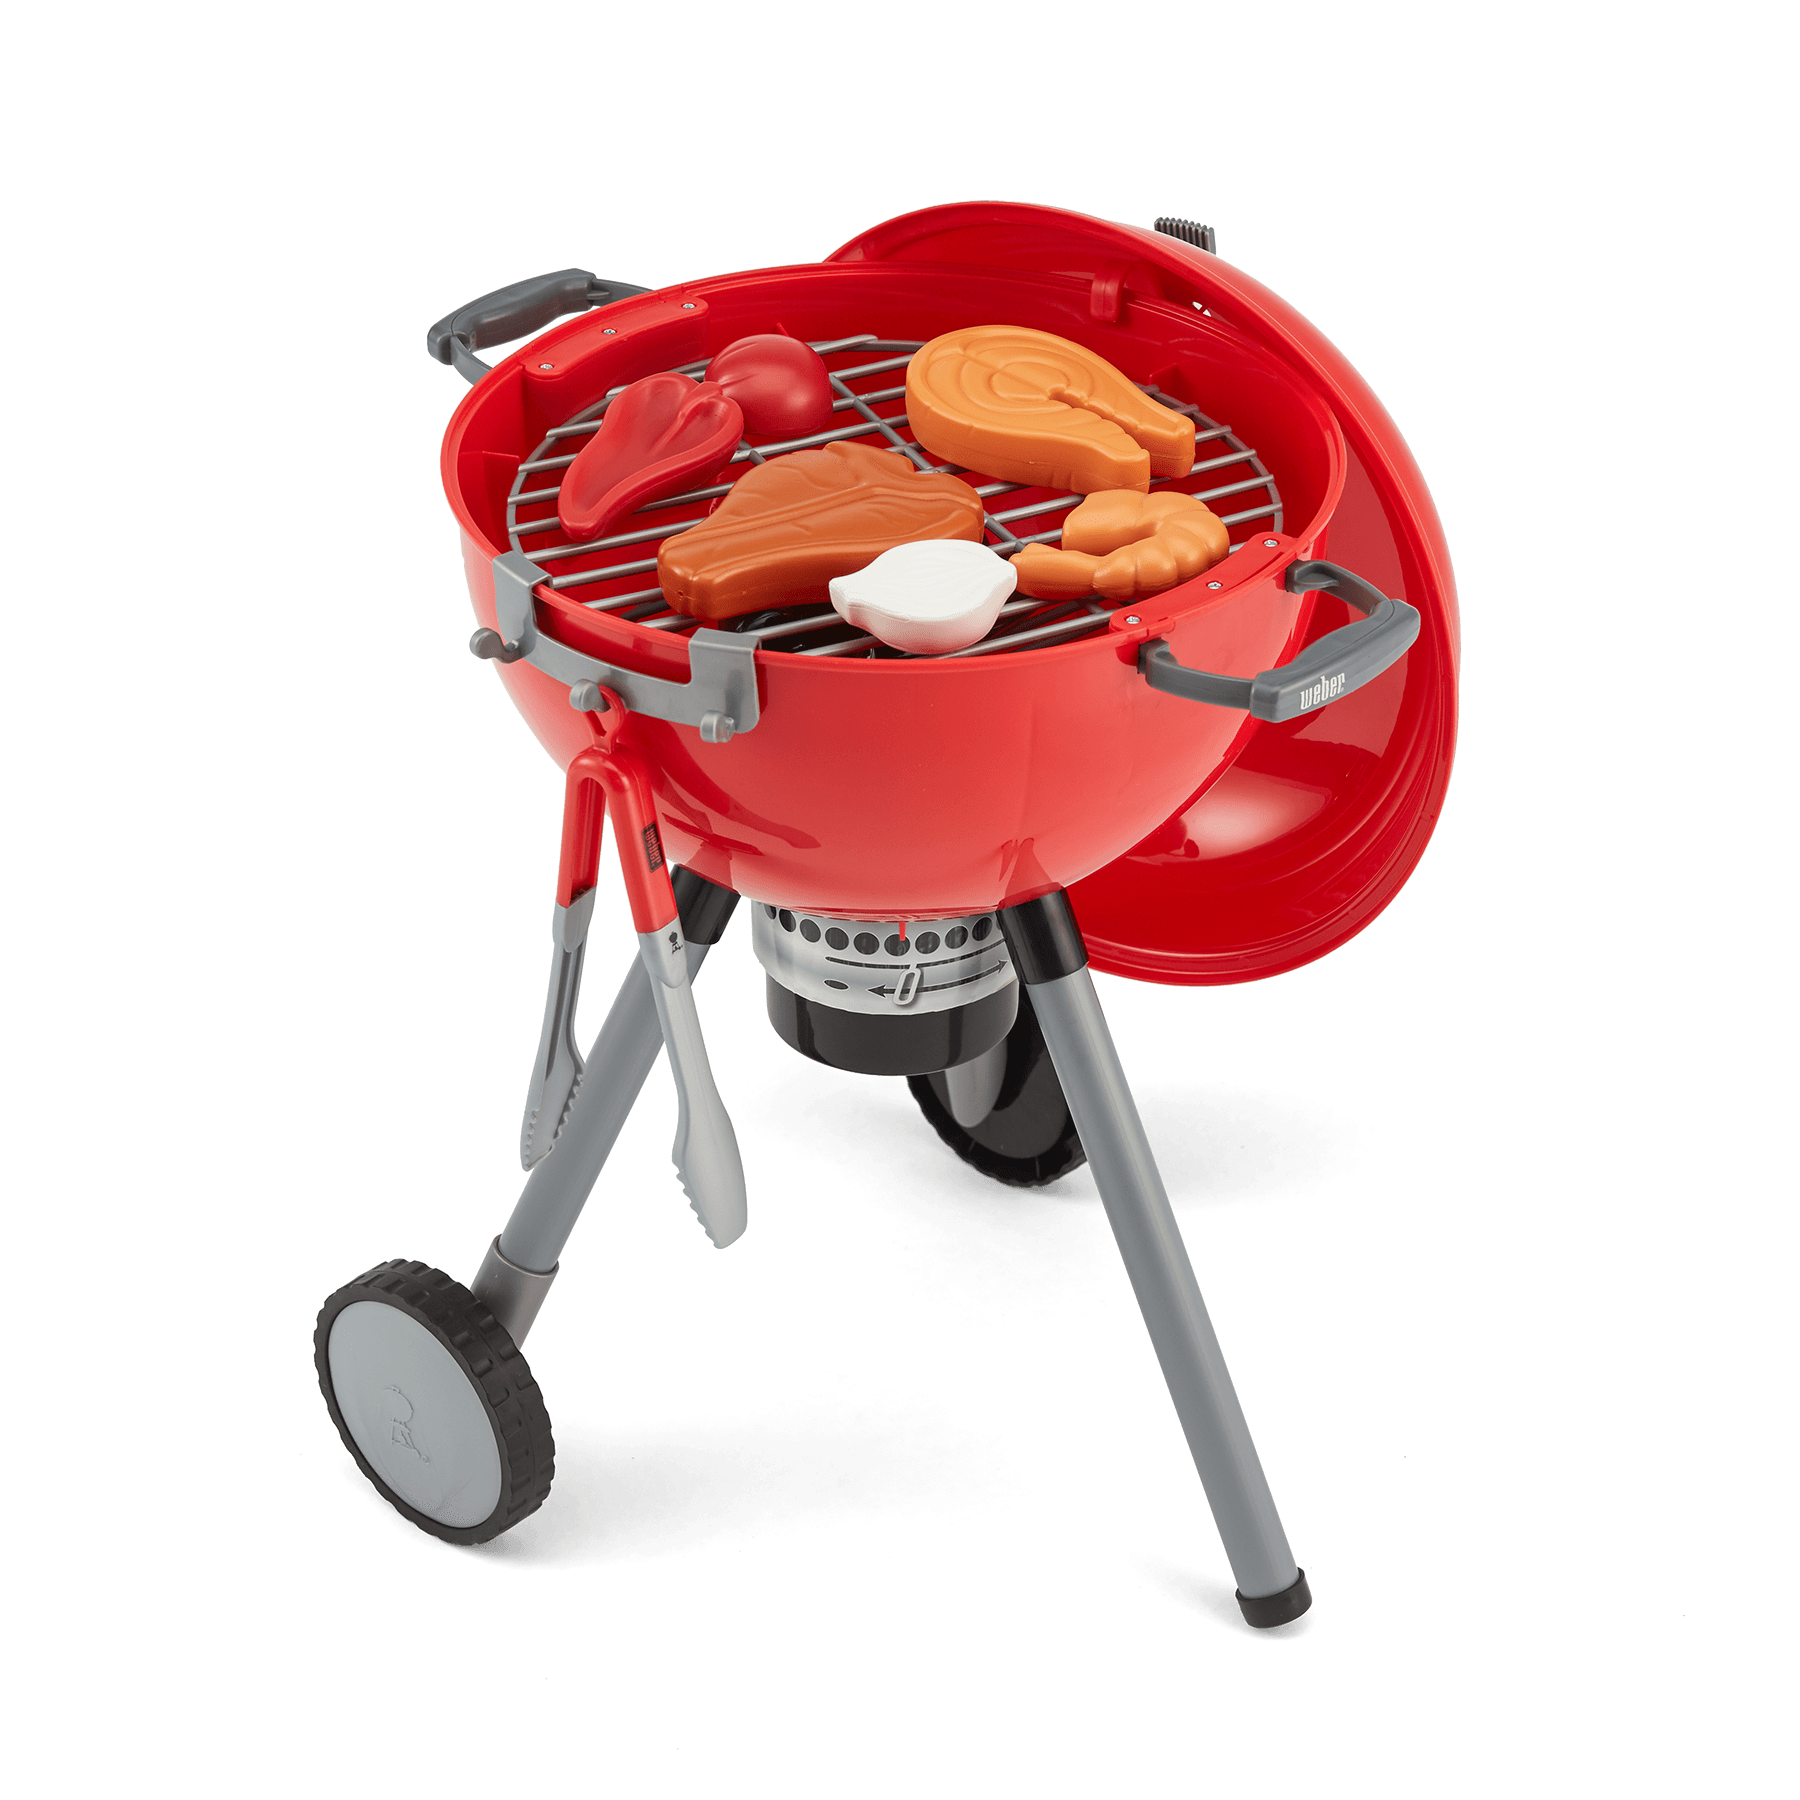 Weber® Original Kettle speelgoedbarbecue (rood)